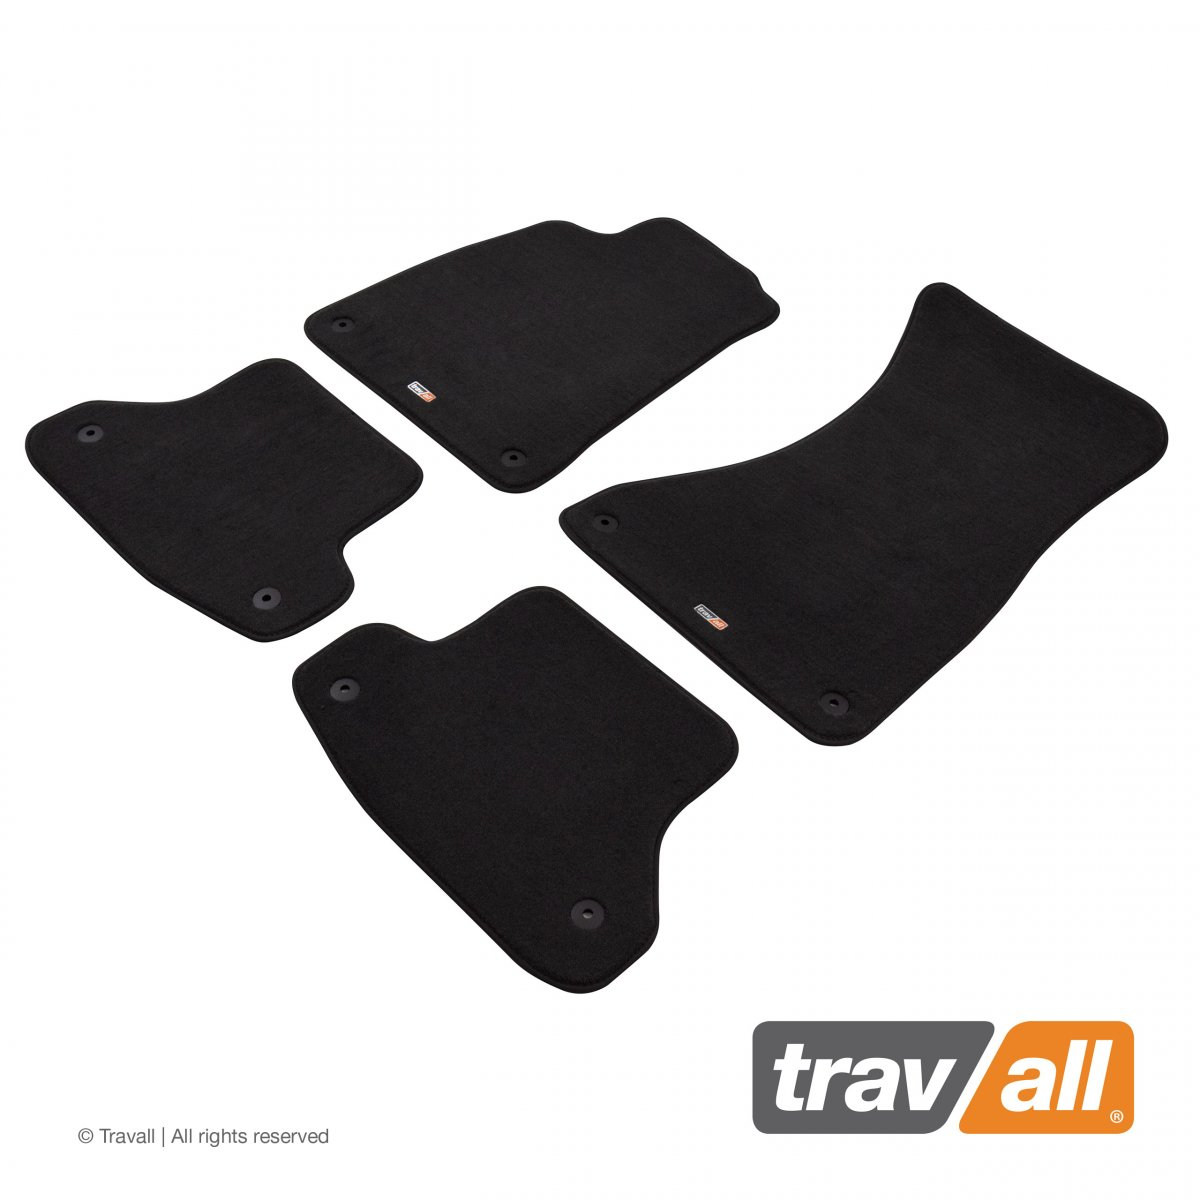 Travall® MATS [LHD] for Audi A5/S5 Coupe (2016 - )